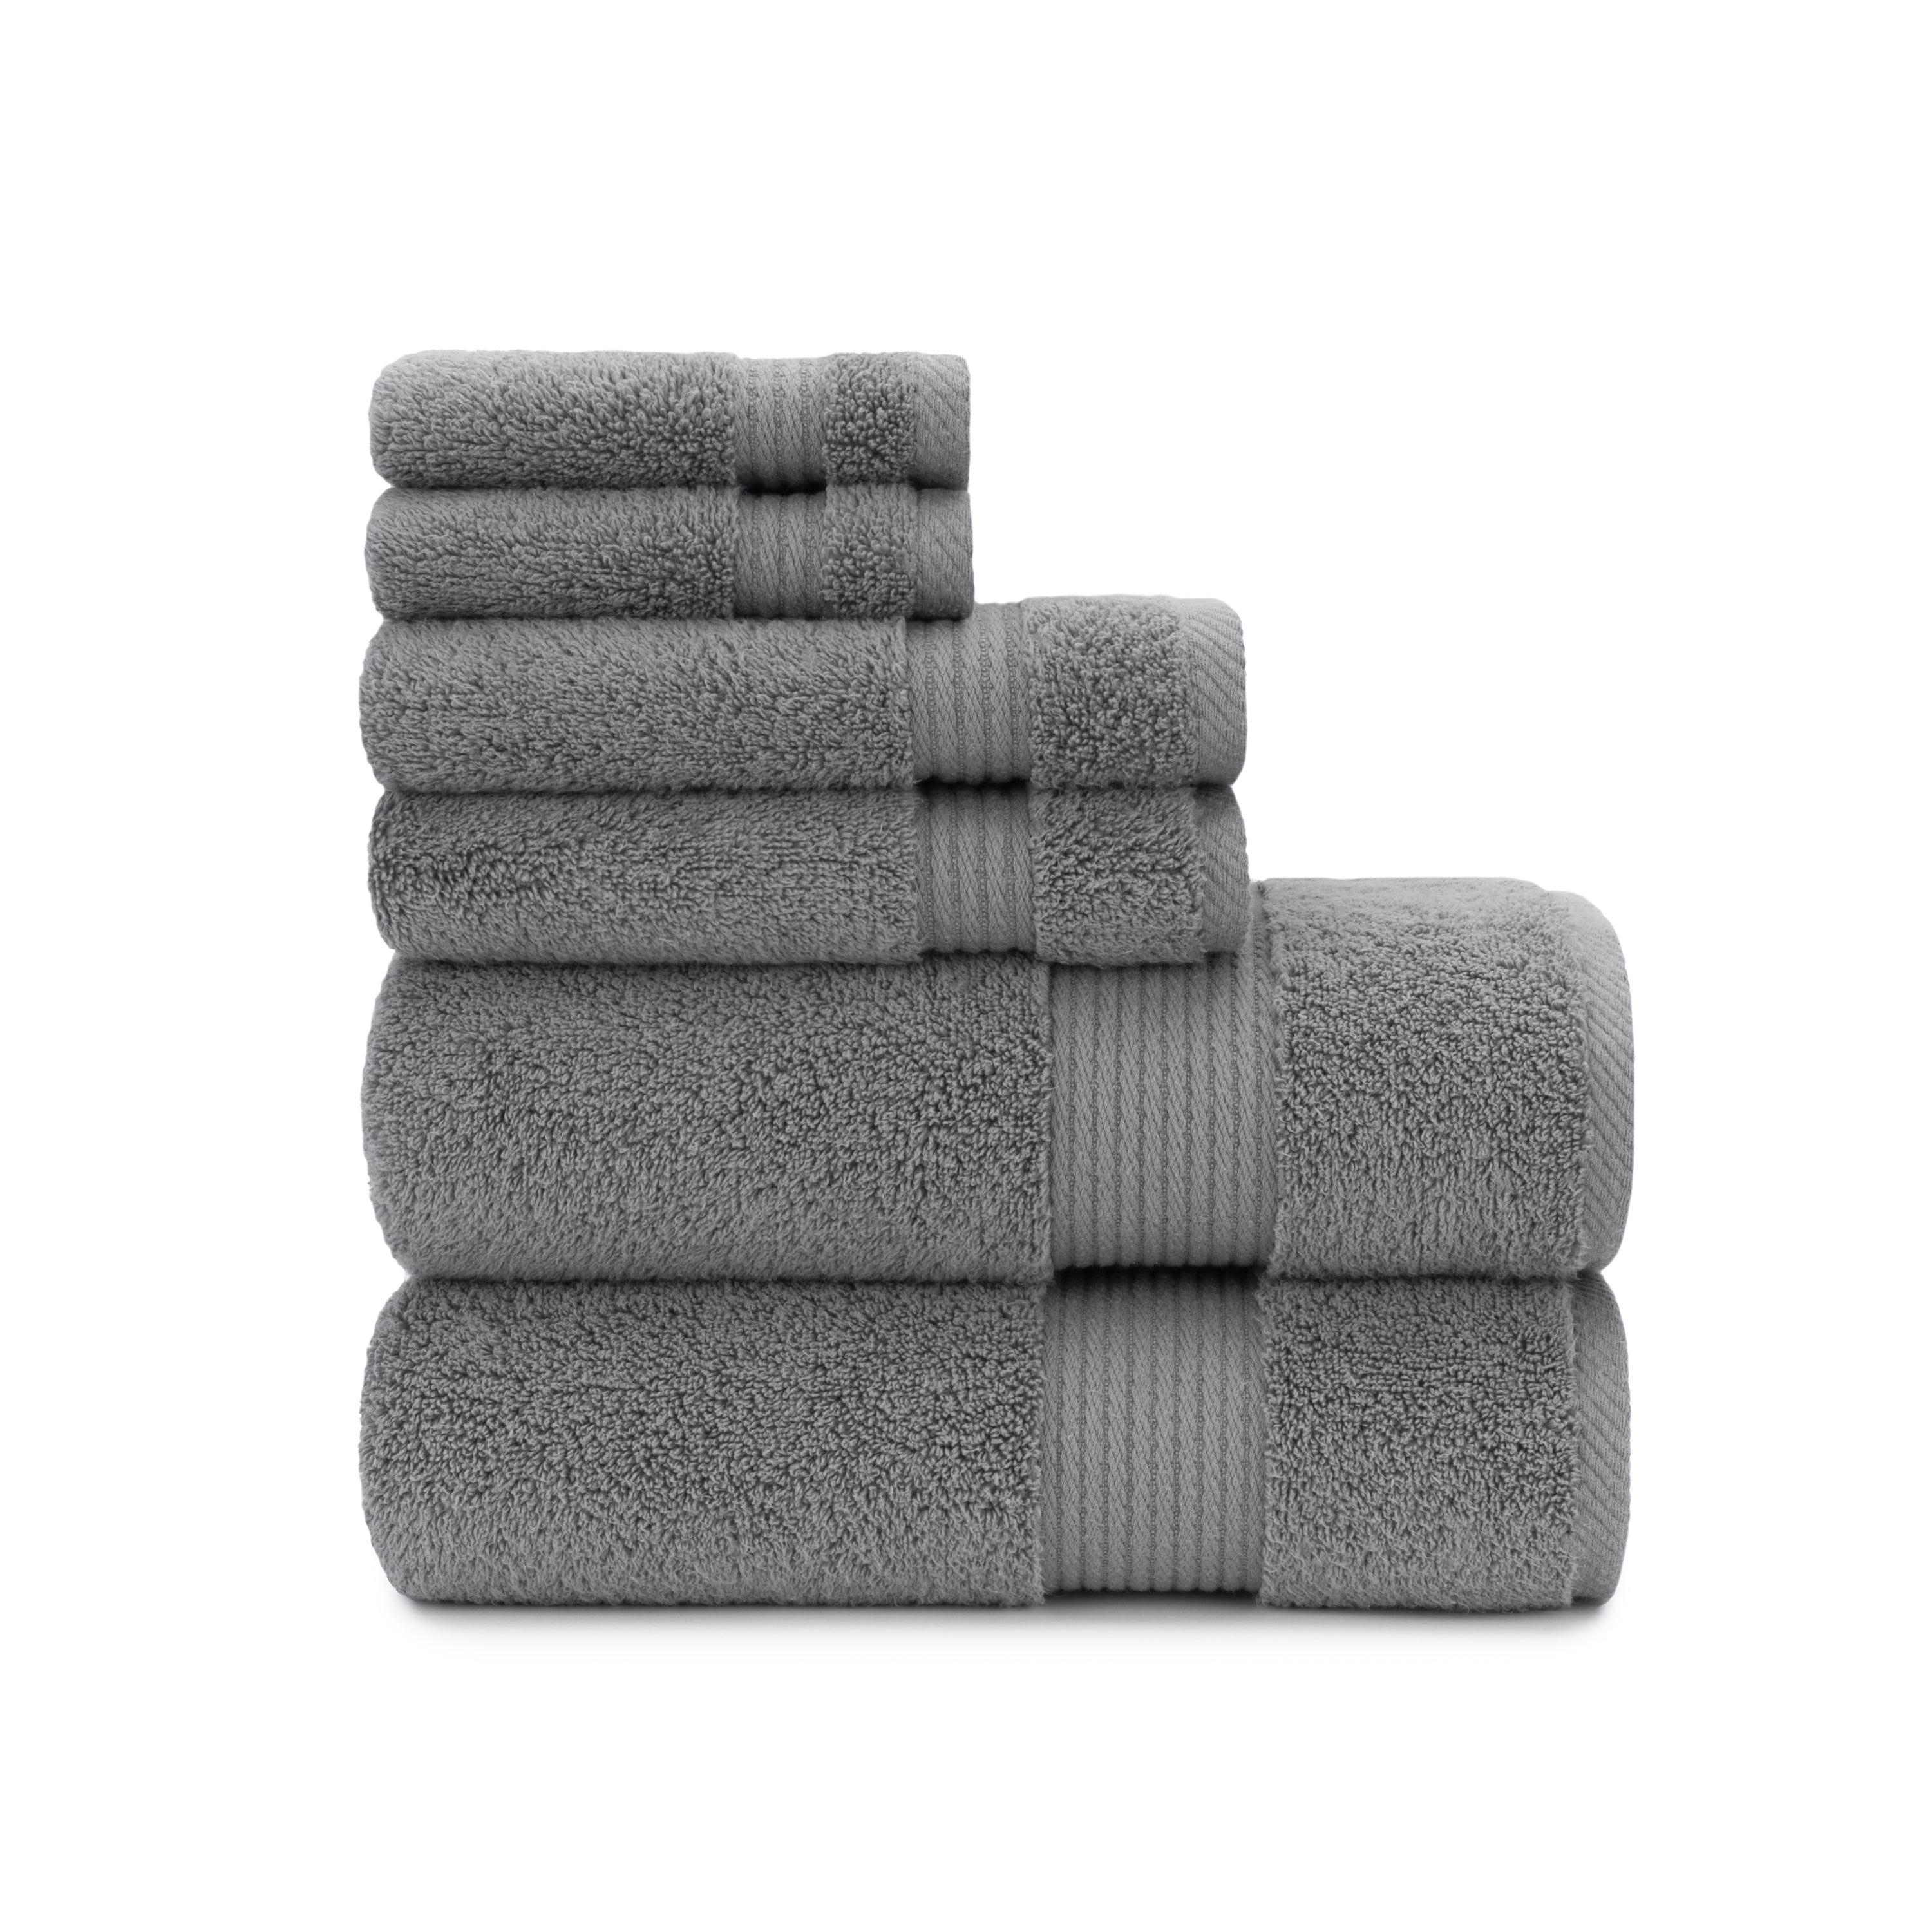 Perfectly Suitable For Home Use, Bathroom Towels, Spa And Kitchen Towel  Set, Completely Absorbent, Plush Towel